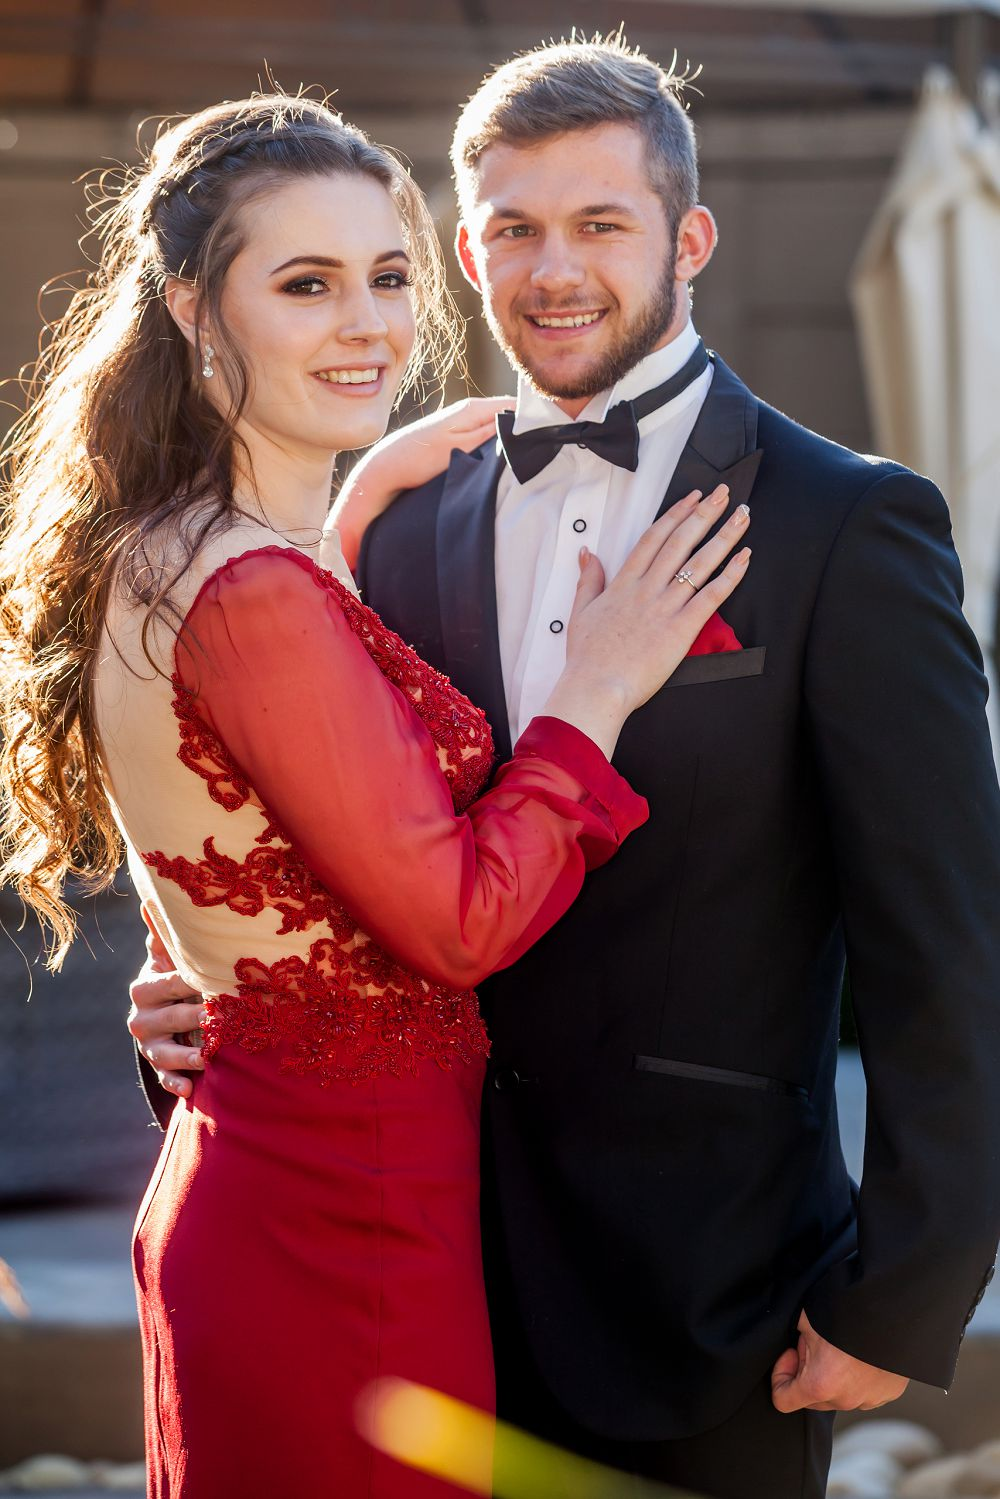 Gennas Matric Dance Expressions Photography 024